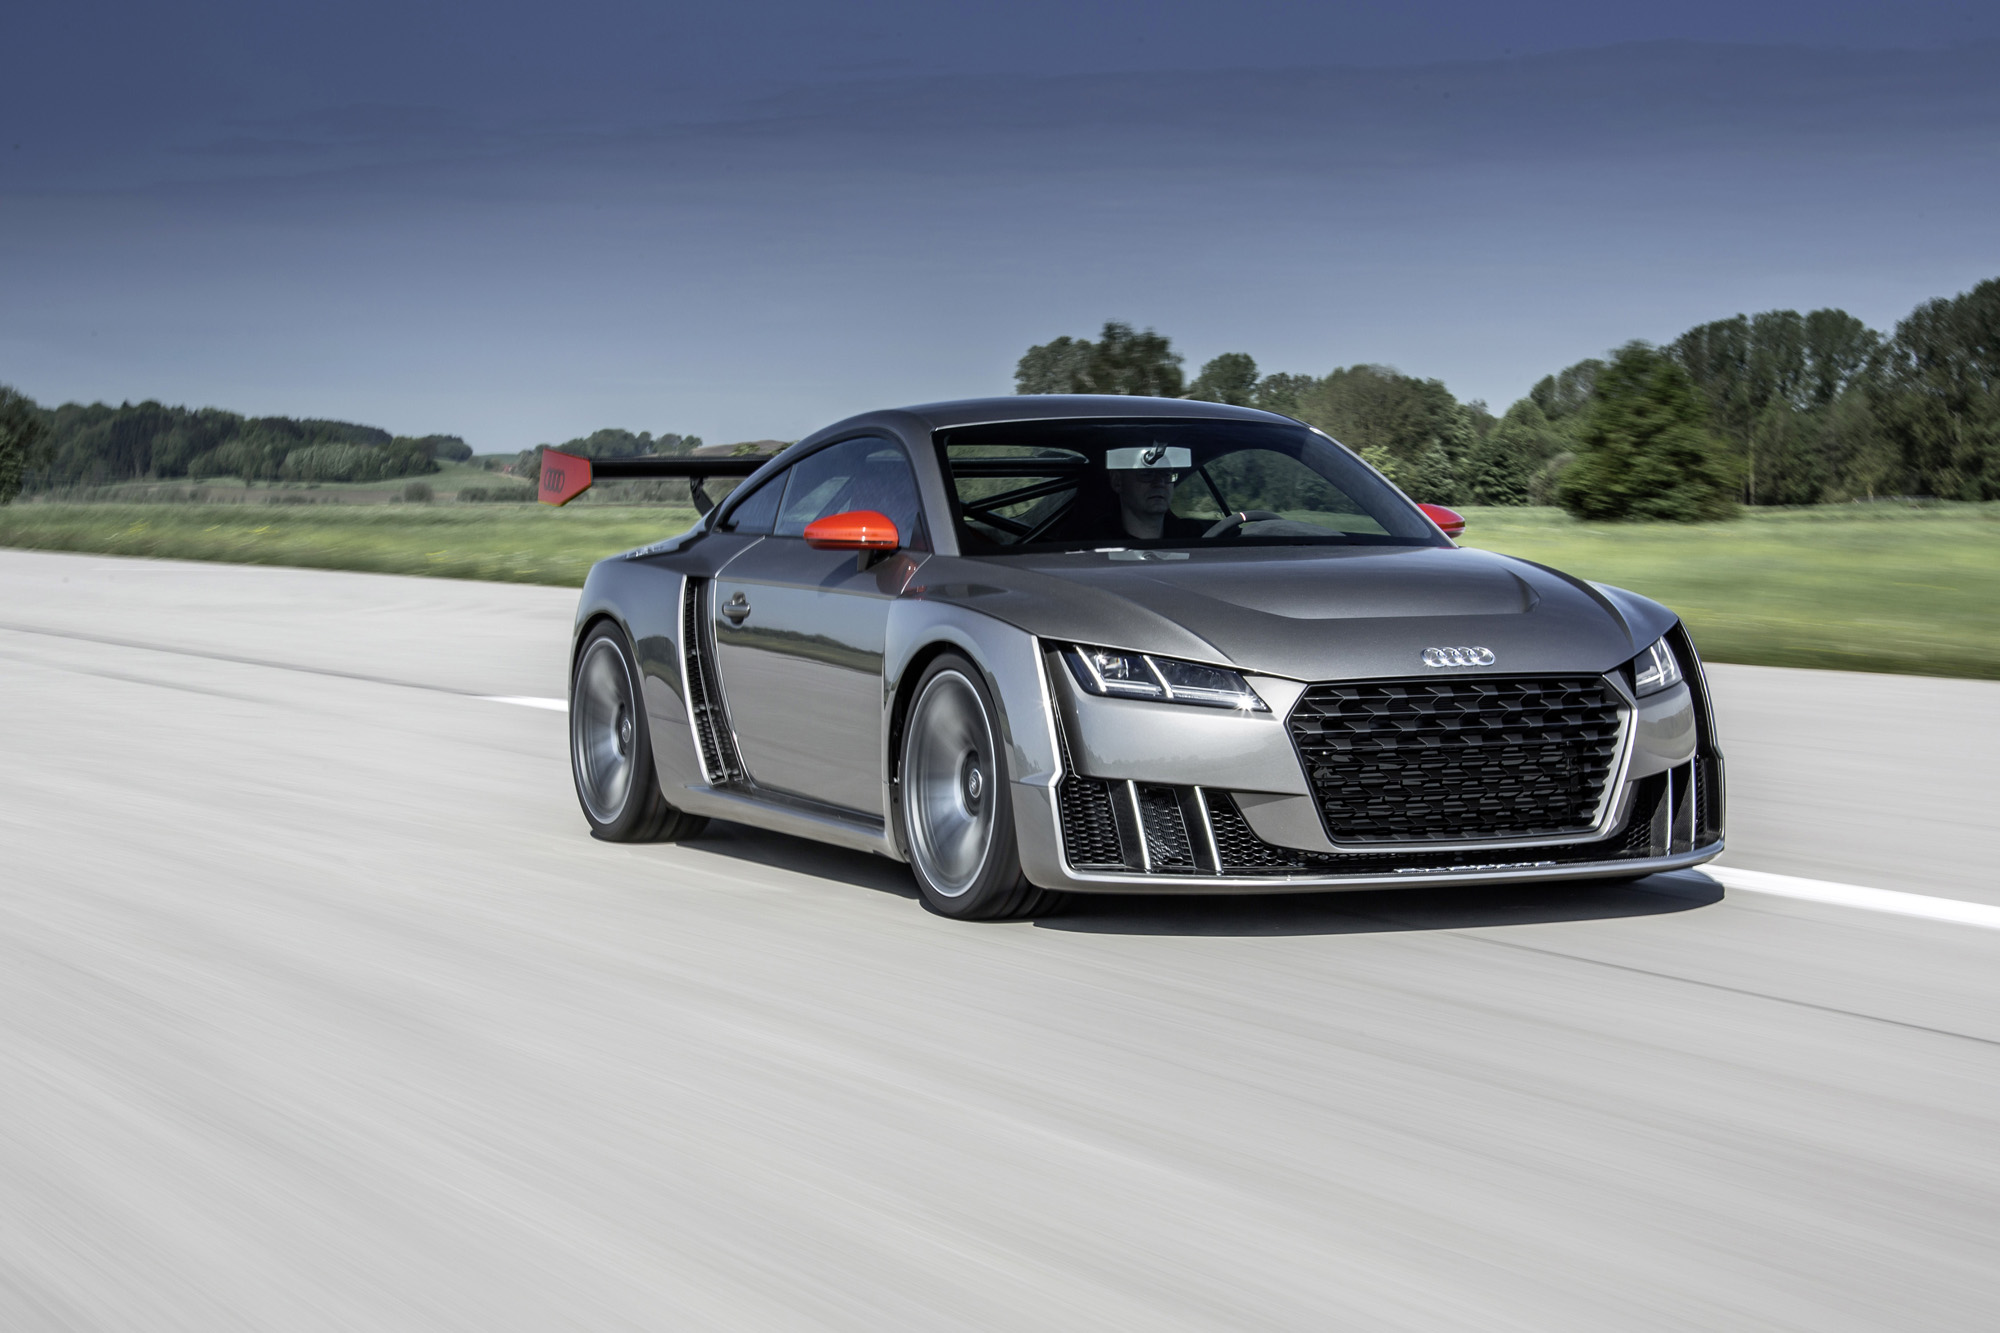 audi tt clubsport turbo concept photos mega gallery news. Black Bedroom Furniture Sets. Home Design Ideas